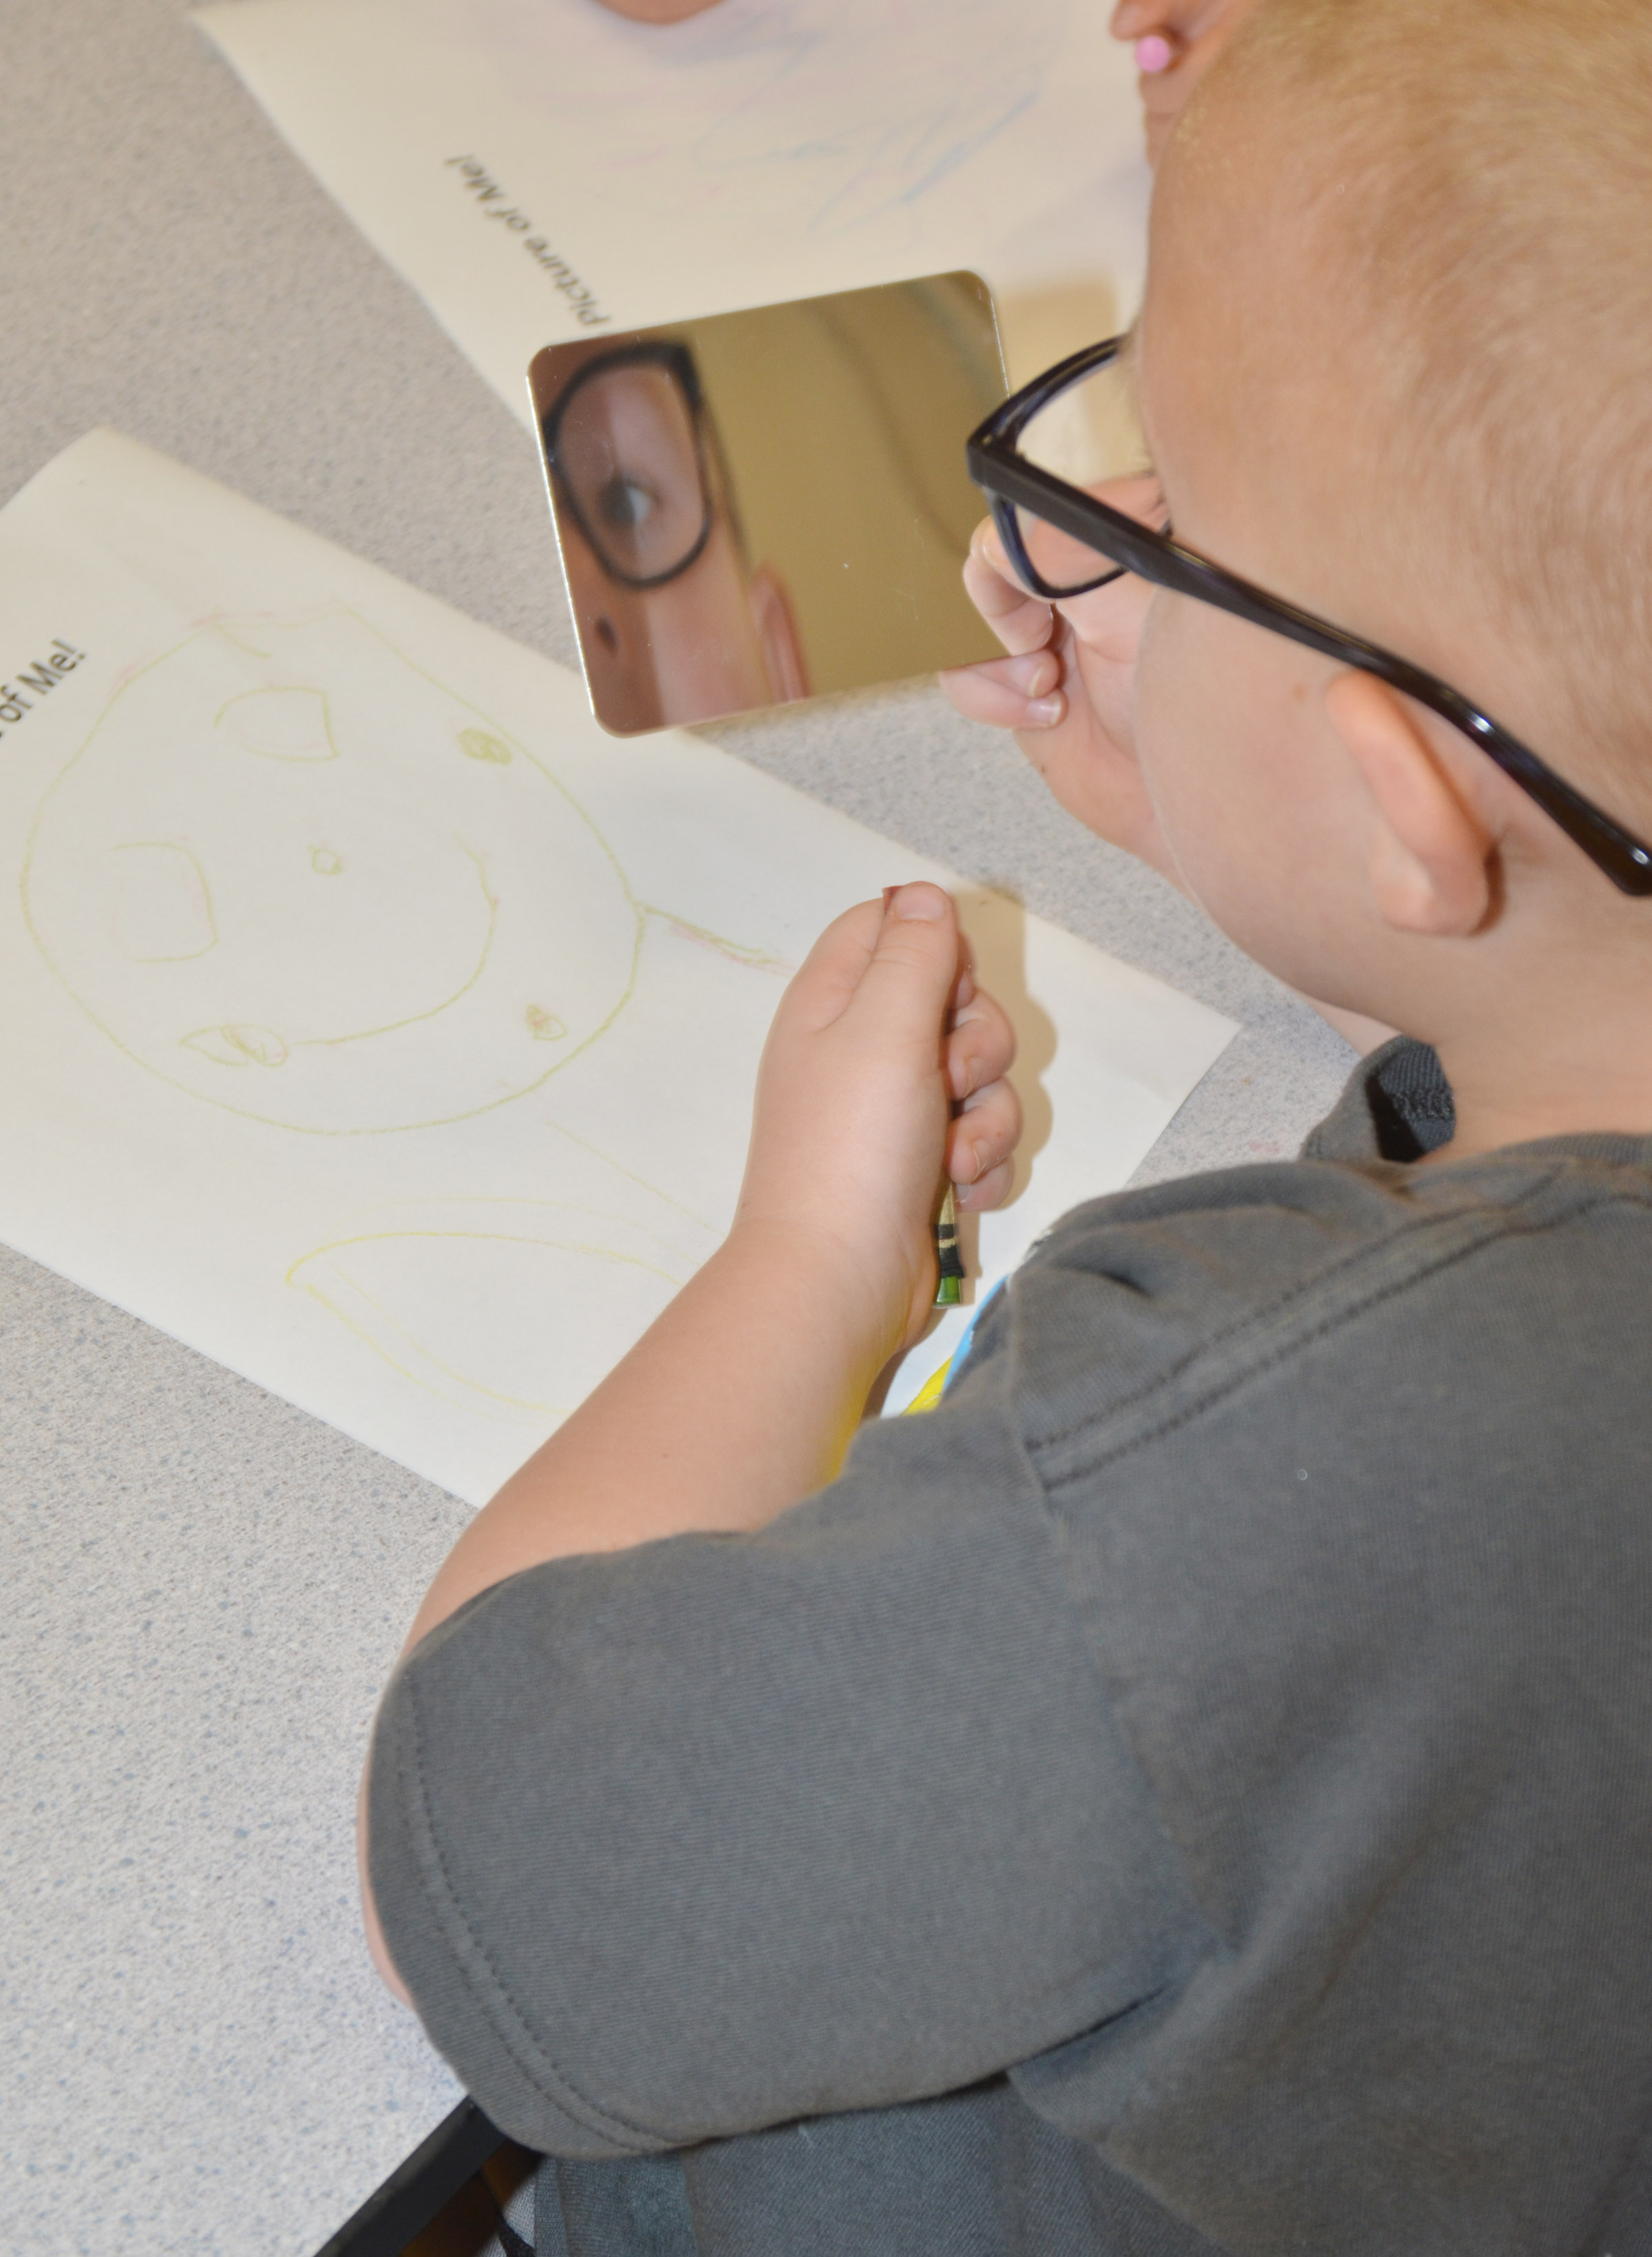 CES preschool student Anthony McClure looks at himself in the mirror as he draws a self-portrait.